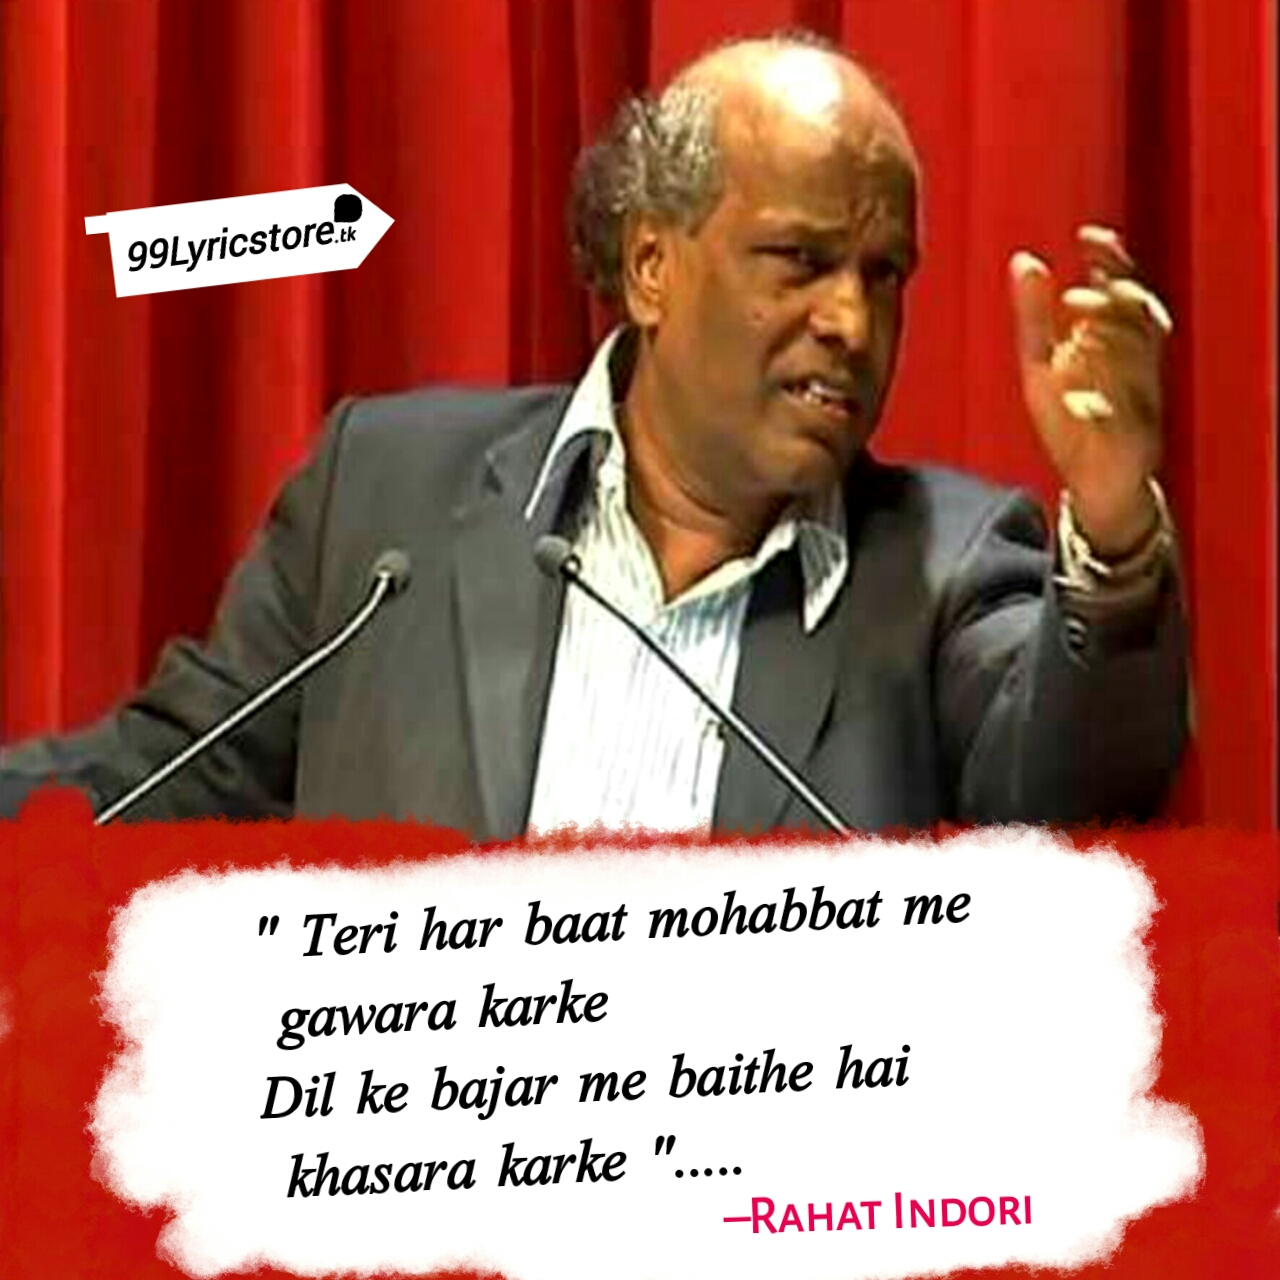 Teri Har Baat Mohabbat Me Gawara Karke – Rahat Indori | Ghazal Poetry, Rahat Indori Shayari, Rahat Indori Love Shayari, Rahat Indori Love ghazal, Rahat Indori Love lyrics, love Quotes, Love Poetry, love Ghazals, Two line Quotes, Rahat Indori image,  Teri har baat mohabbat me gawara karke Dil ke bazaar me baithe hai khasara karke